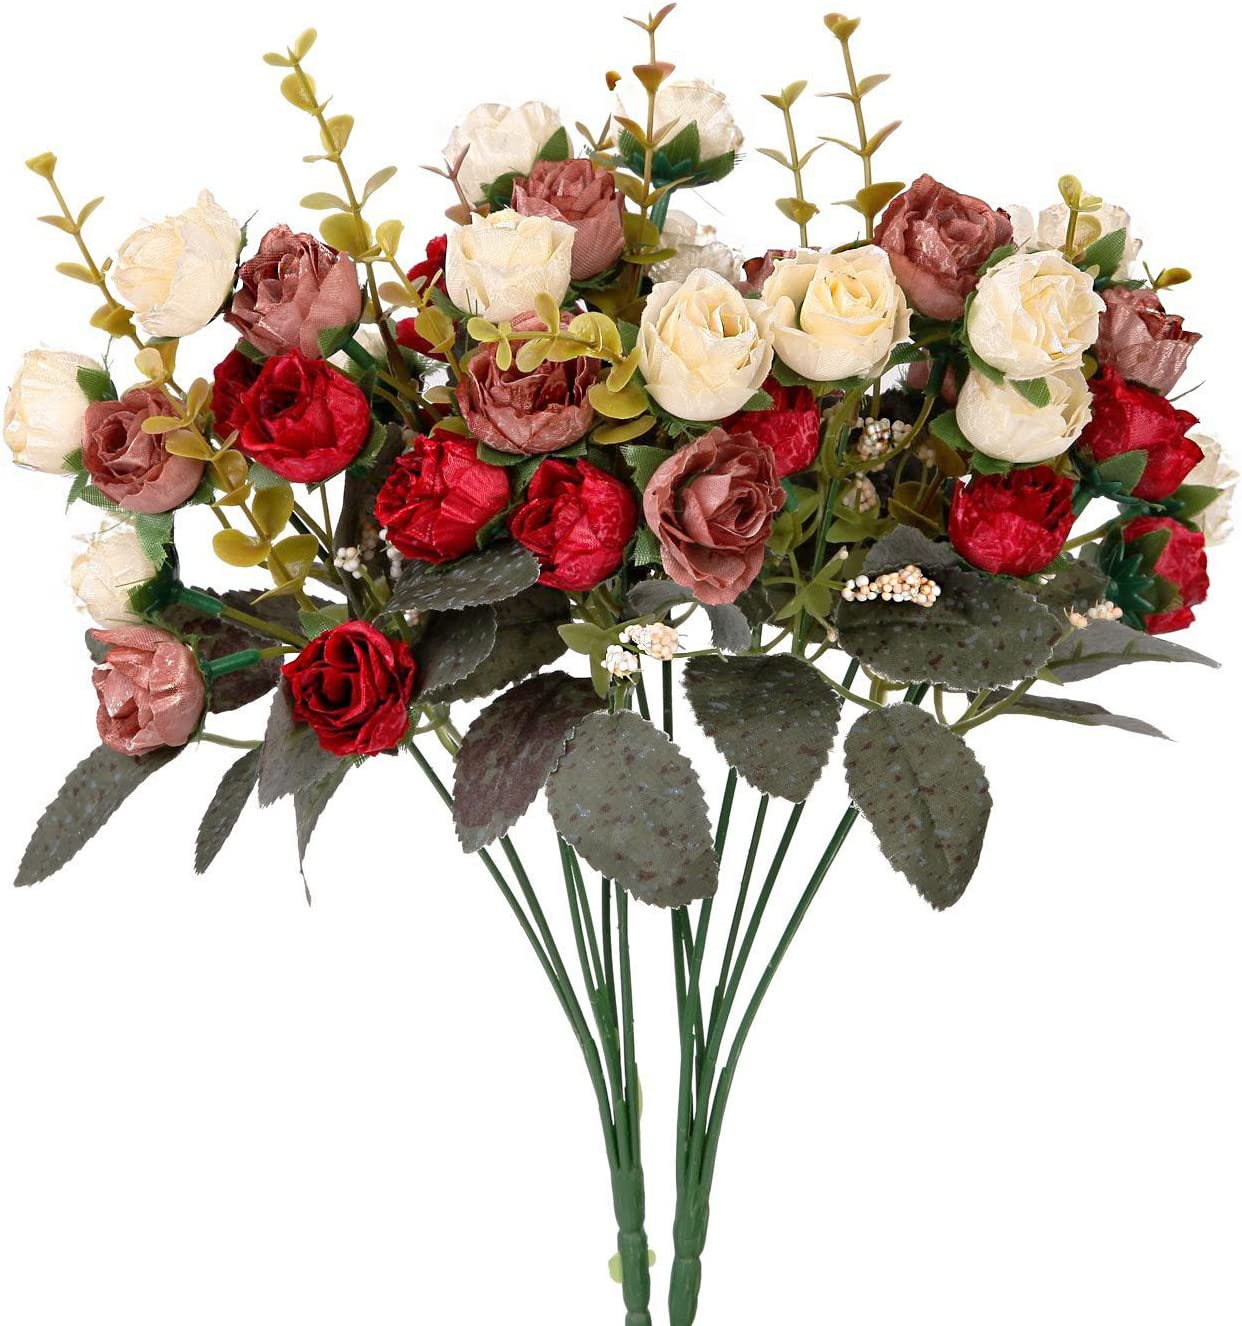 Houda Artificial Silk Fake Flowers Rose Floral Decor Bouquet,Pack of 2 (Red Coffee)